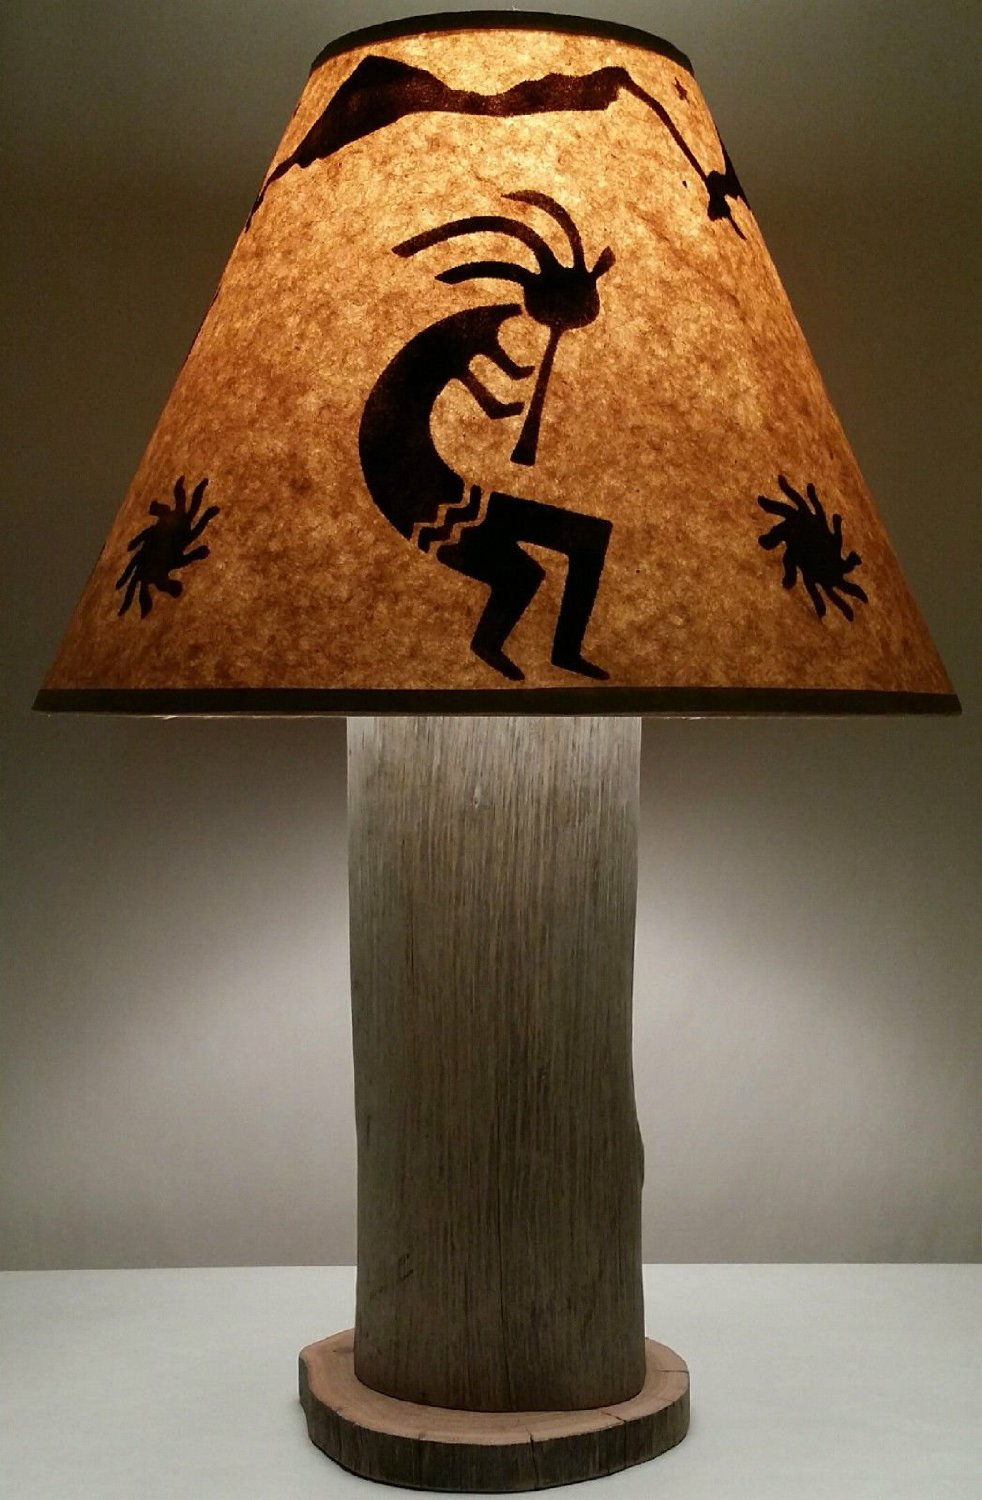 Navajo Kokopelli Native American Indian Southwestern Table Lamp - Total Fab: Southwestern Native American Lamps: Lighting From Earth